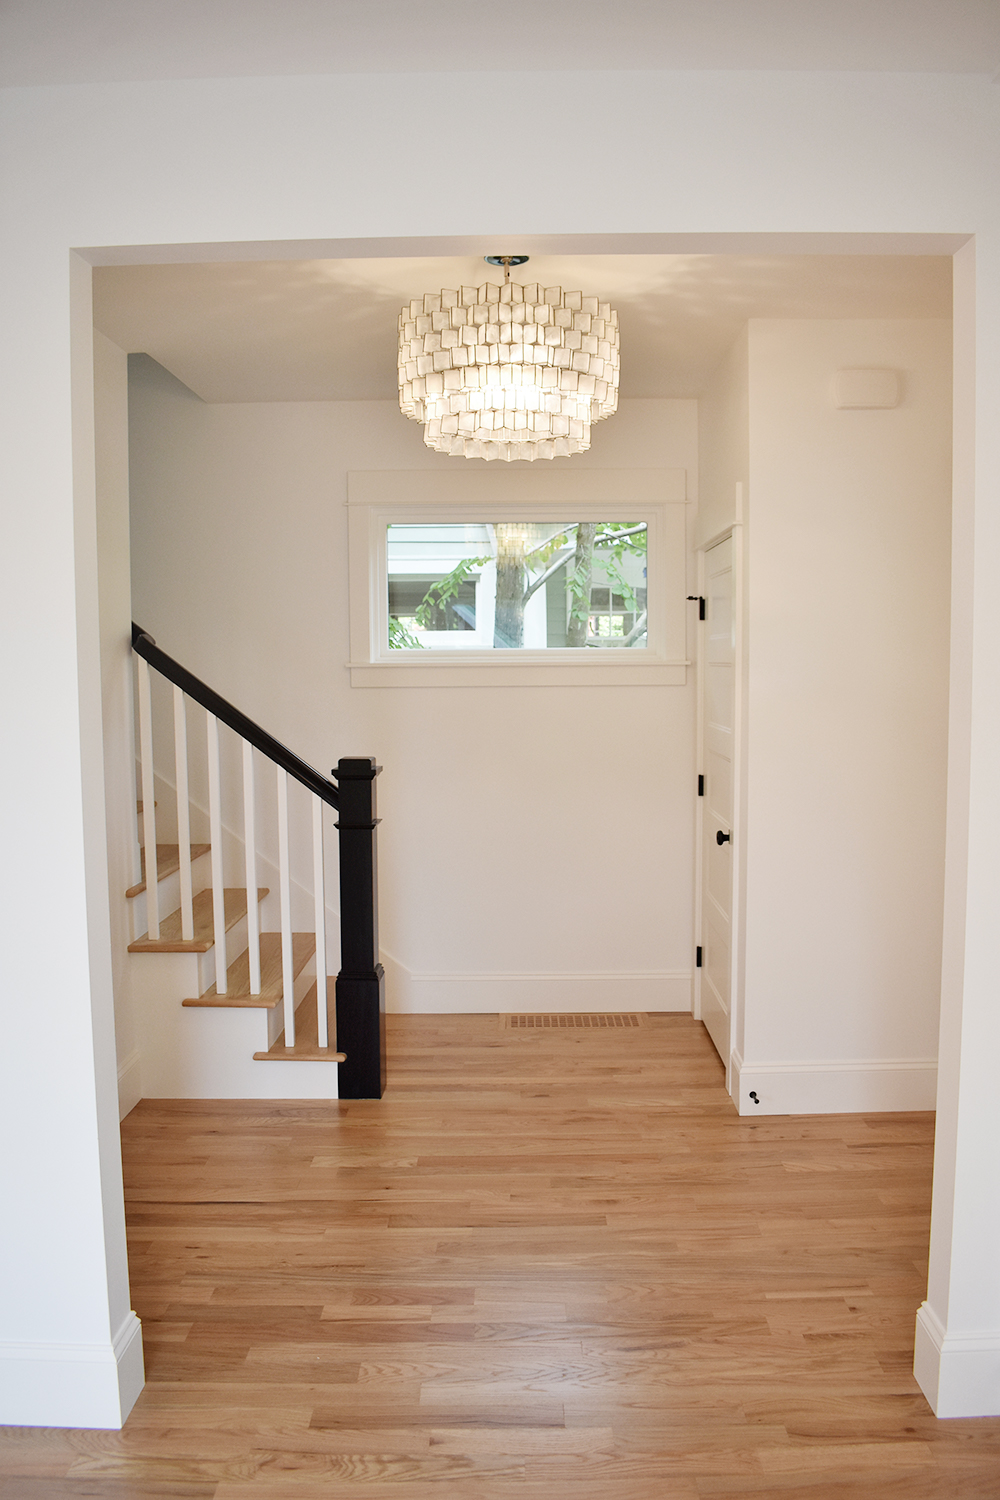 Hallway remodel with new flooring and lighting fixture